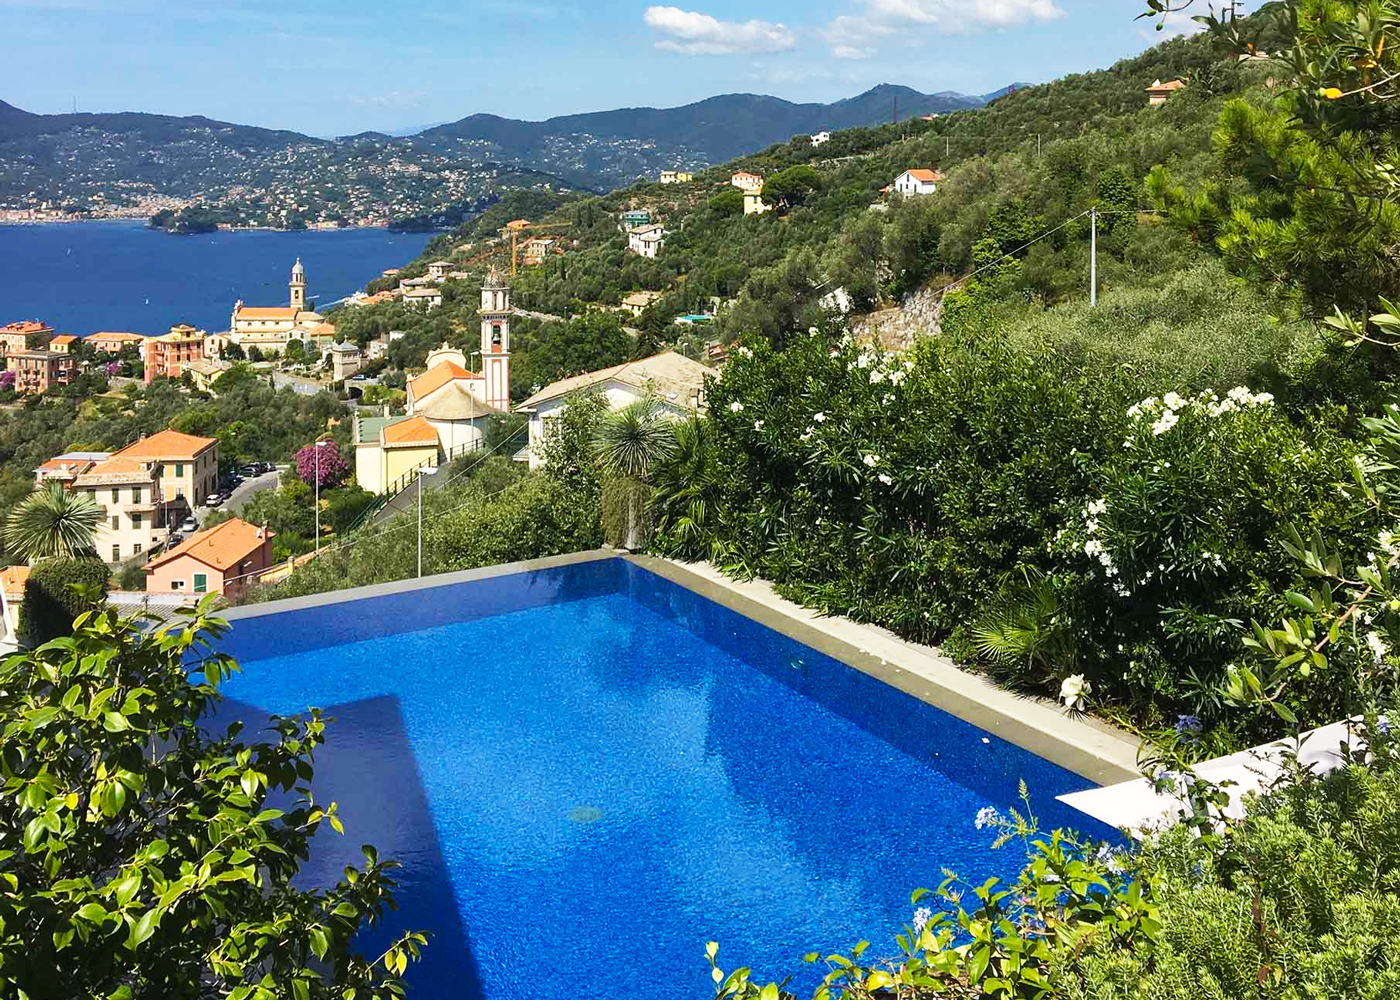 Piscina a sfioro con vista sul mar ligure mygarden by for Piscina sfioro